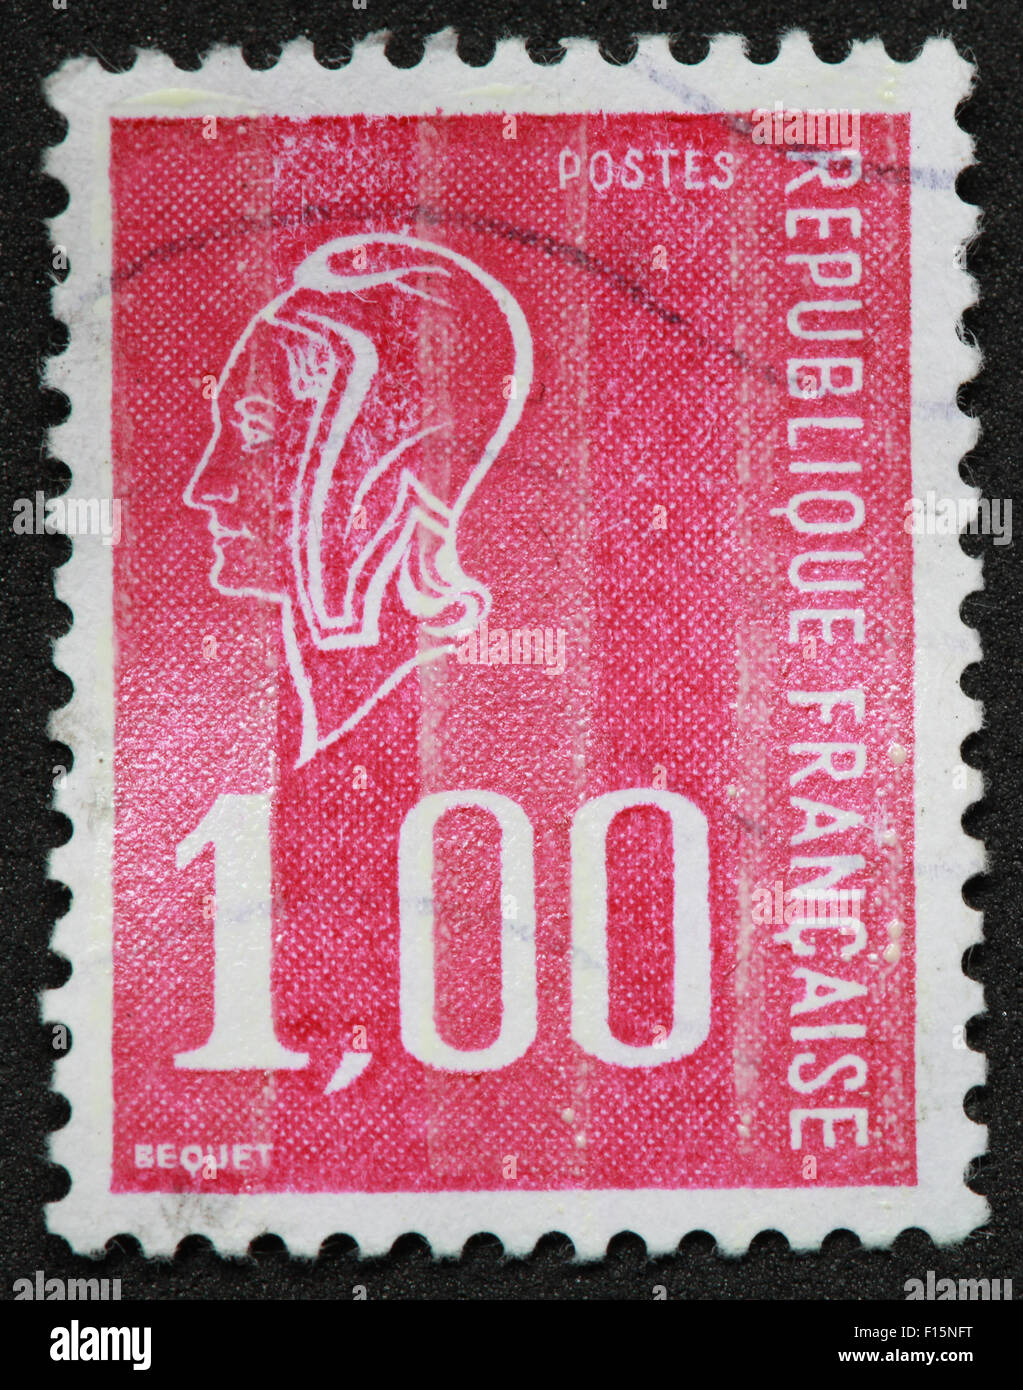 International Post,star,Used and Postmarked,Used,and,postmarked,perforated,stamp,Used,and,postmarked,Stamp,post,posting,mail,hobby,perforation,mark,postage,stamp,print,stamp,cancelled,stamp,payment,correspondence,postman,collection,collector,phila,pink red,France,French,Gotonysmith,post,posting,mail,hobby,perforation,mark,postage,stamp,print,stamp,cancelled,canceled,stamp,payment,correspondence,postman,collection,collector,philately,philatelist,letter,price,history,retro,Australian,Vintage,delivery,date,relationship,communication,Oz,Australia,DownUnder,classic rare unique Austrailian financial,investment,invest,value,British,empire,nation,canceled,printed on black background,close-up,closeup,close,up,sent,send,philately,mailing,shipping,postoffice,office,isolated,circa,special,colour,color,postmarked,marked,airmail,aged,antique,retro,cutting,historic,old,stamps,collection,stamp collection,album,Timbre,Sello,Stempel,Selo,Buy Pictures of,Buy Images Of,Down Under,Black background